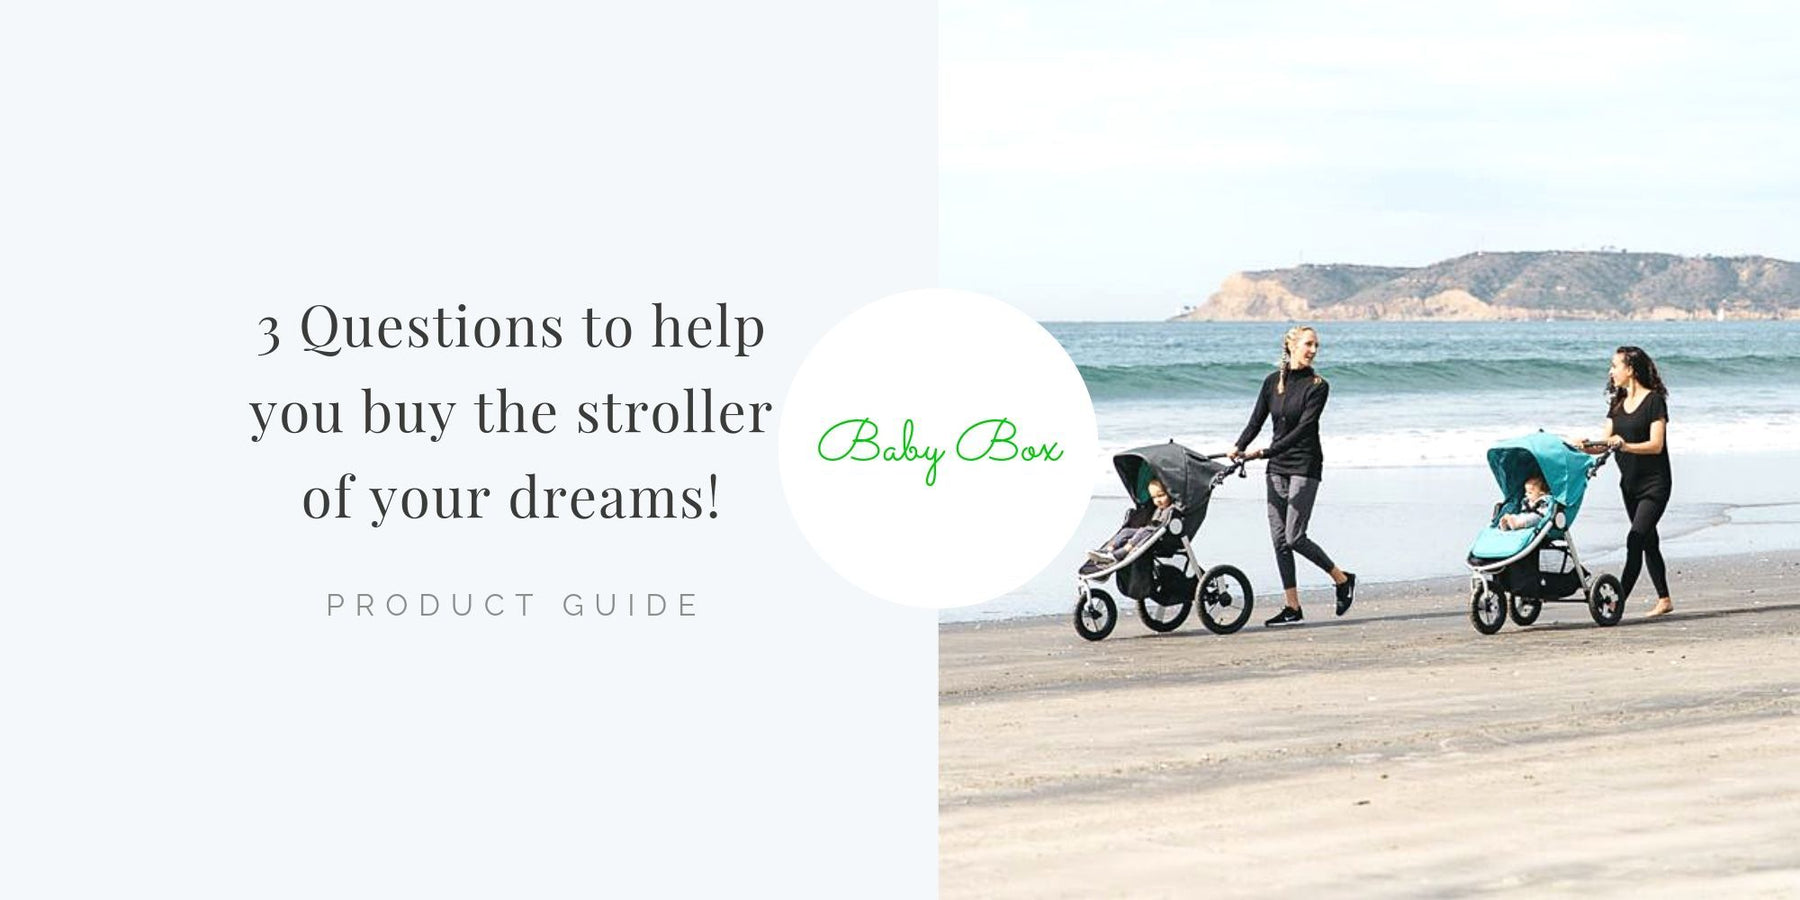 These 3 questions will help you buy the stroller of your dreams!